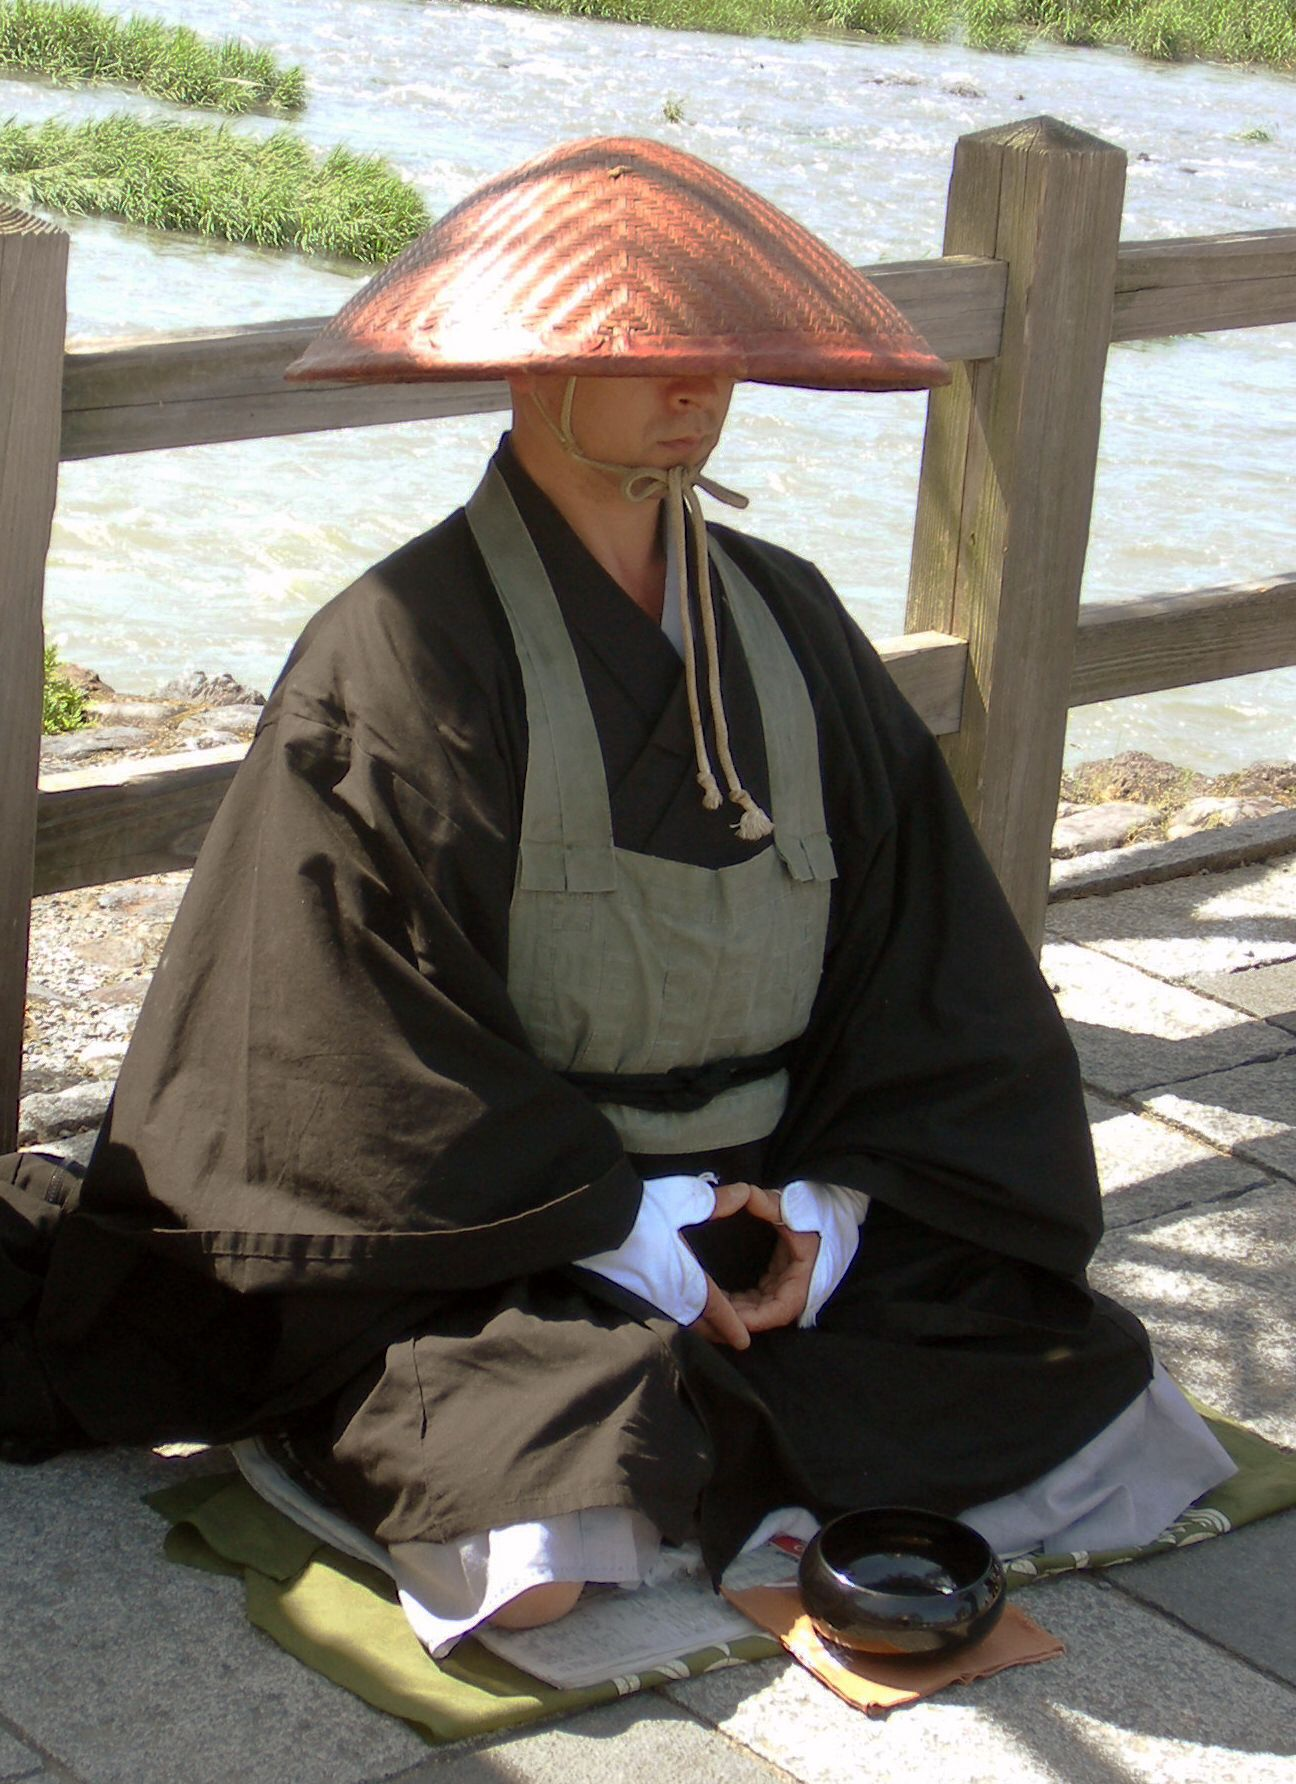 A rakusu is what is worn over the robe. A black one is worn by priest for special ceremonies